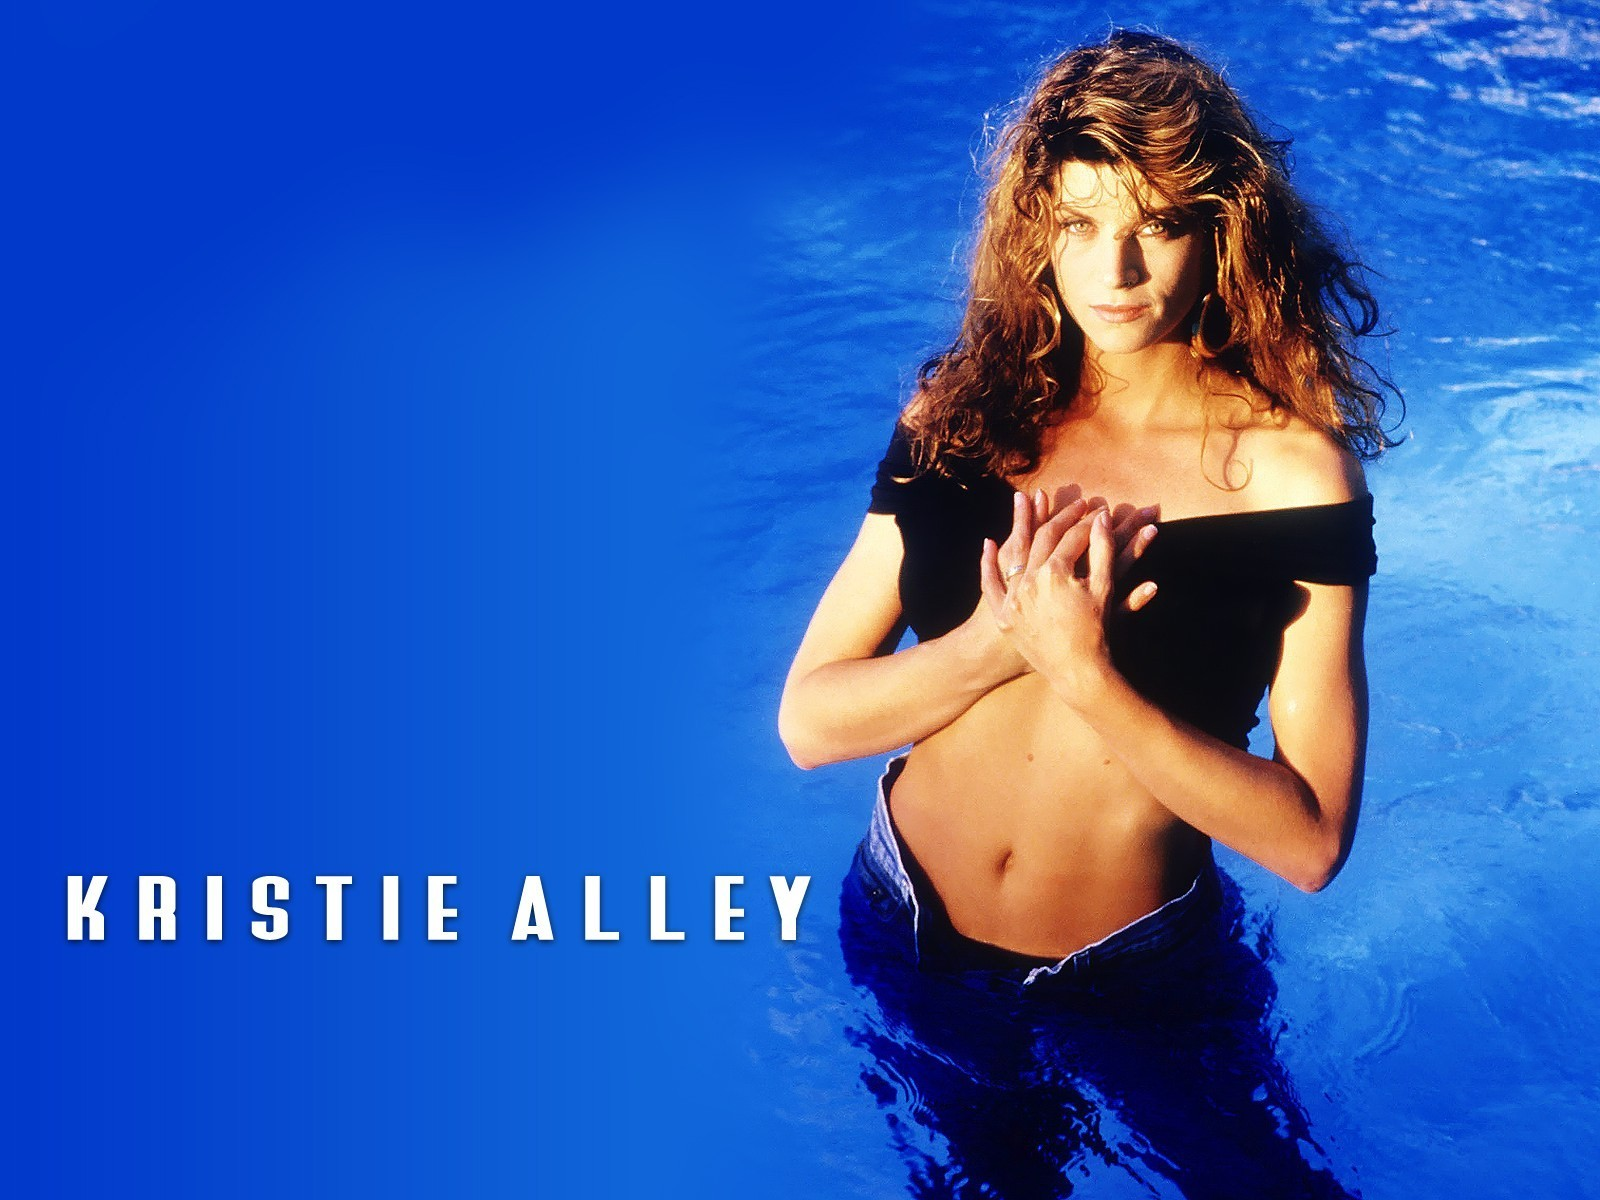 kirstie alley sexy swimsuit pics